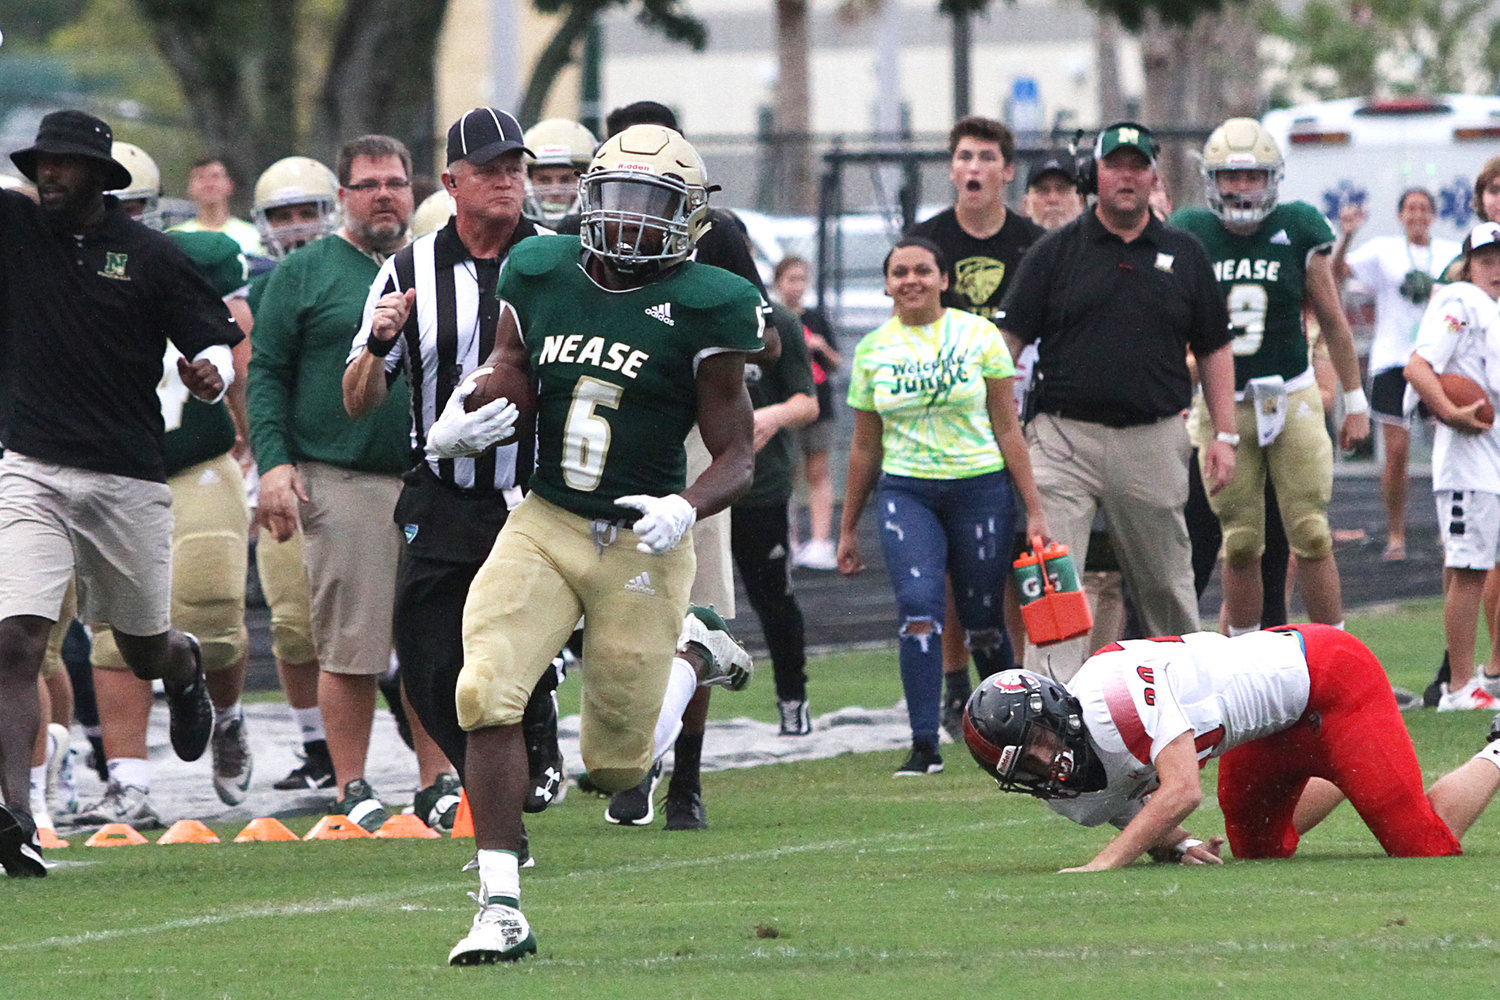 Nease running back Joe Bradshaw (6) takes off for a long touchdown run against Creekside on Aug. 30, 2019.